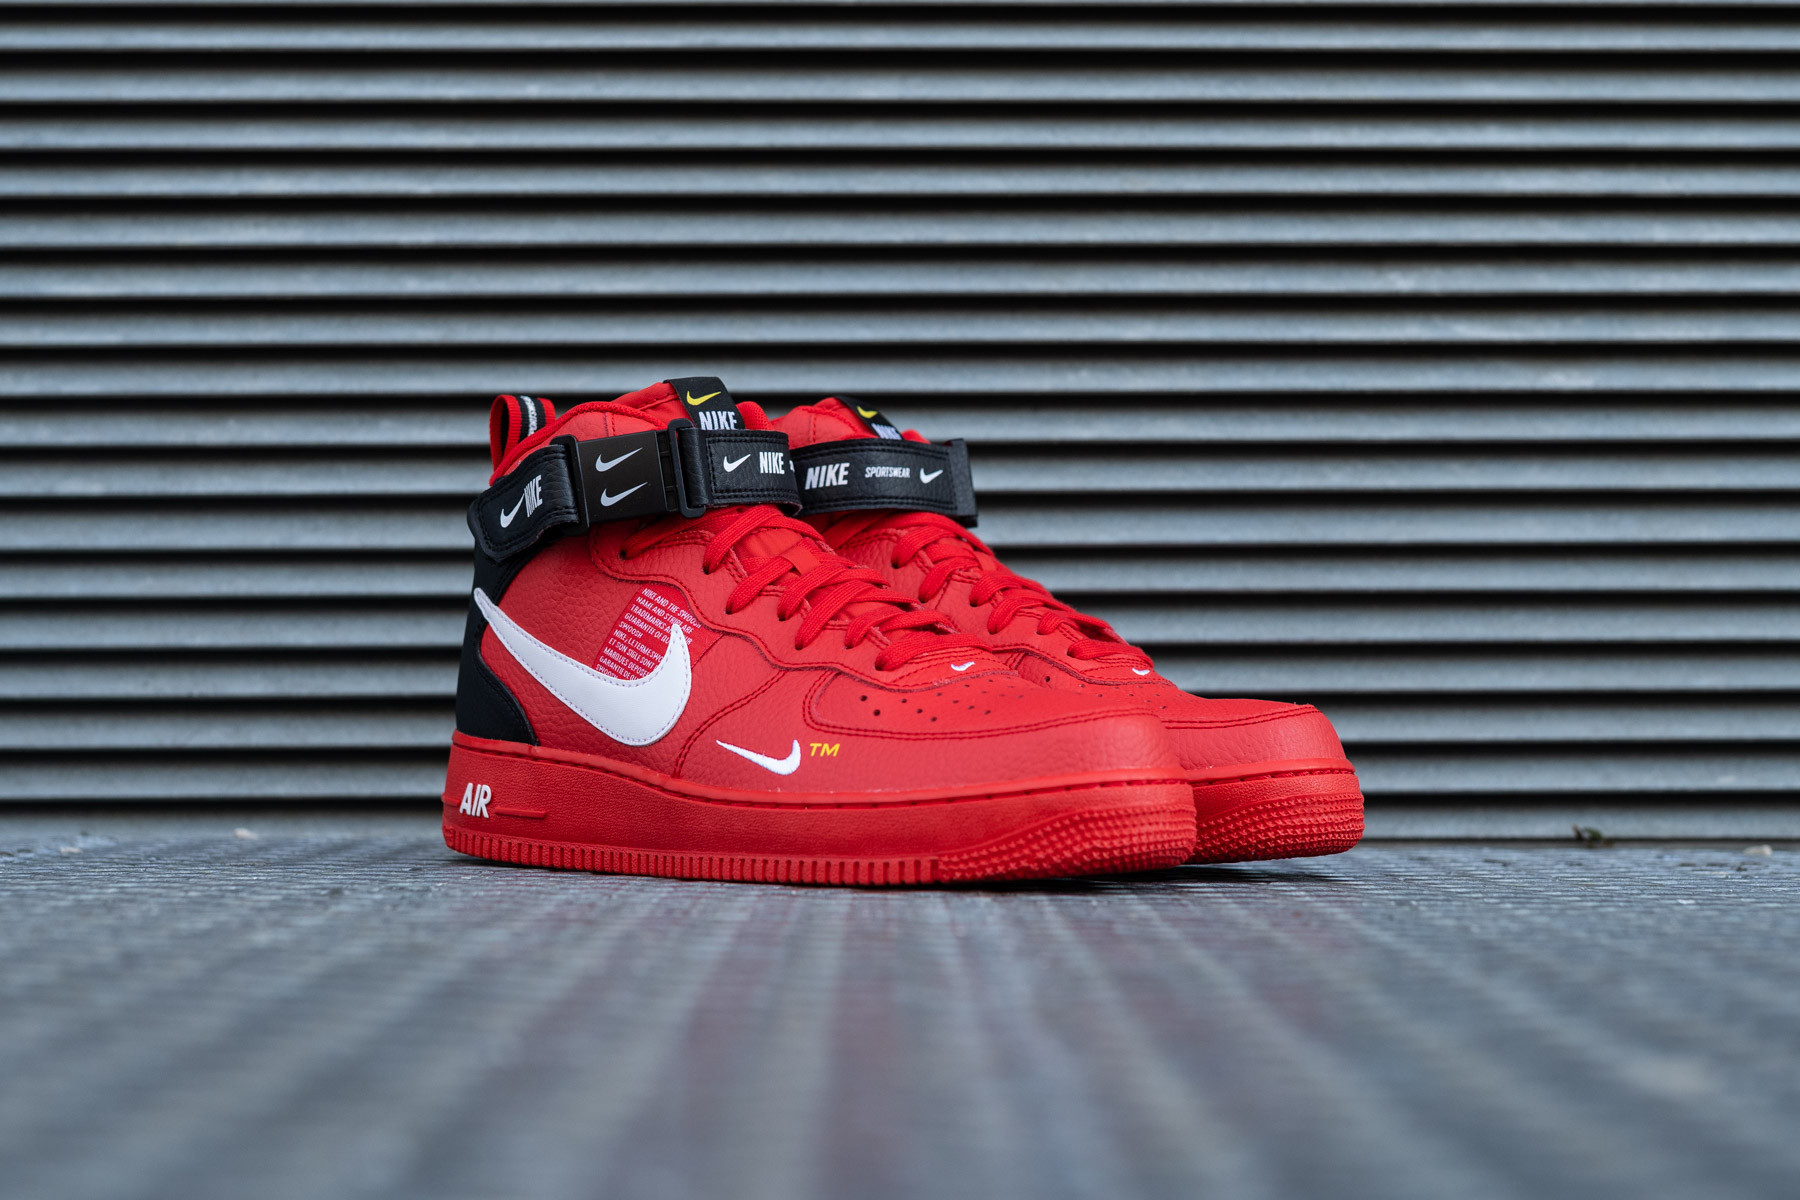 Nike Air Force 1 Mid 07 White Red